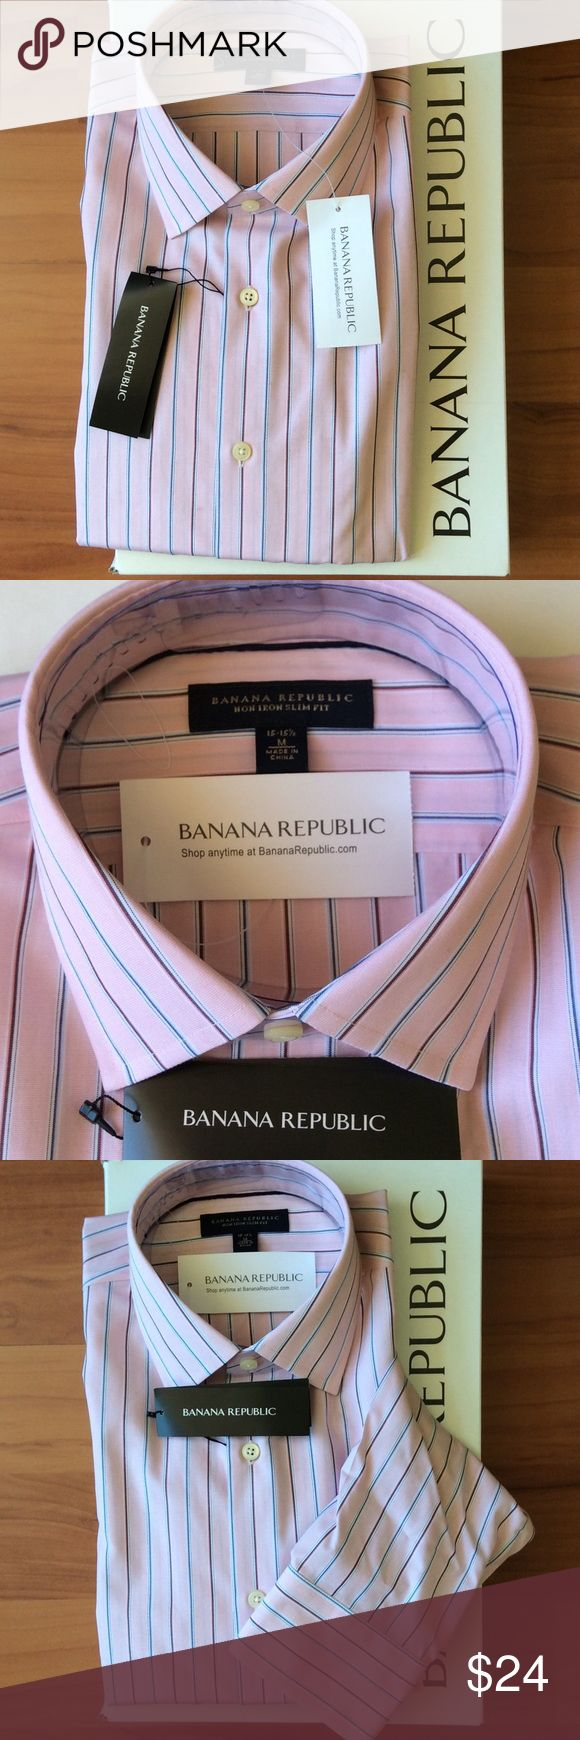 Banana Republic Men Shirt Non iron slim fit. Pink with blue, white, red and burgundy strips. Unused and unopened with original packaging and gift box. It was a gift but the size doesn't fit. Banana Republic Tops